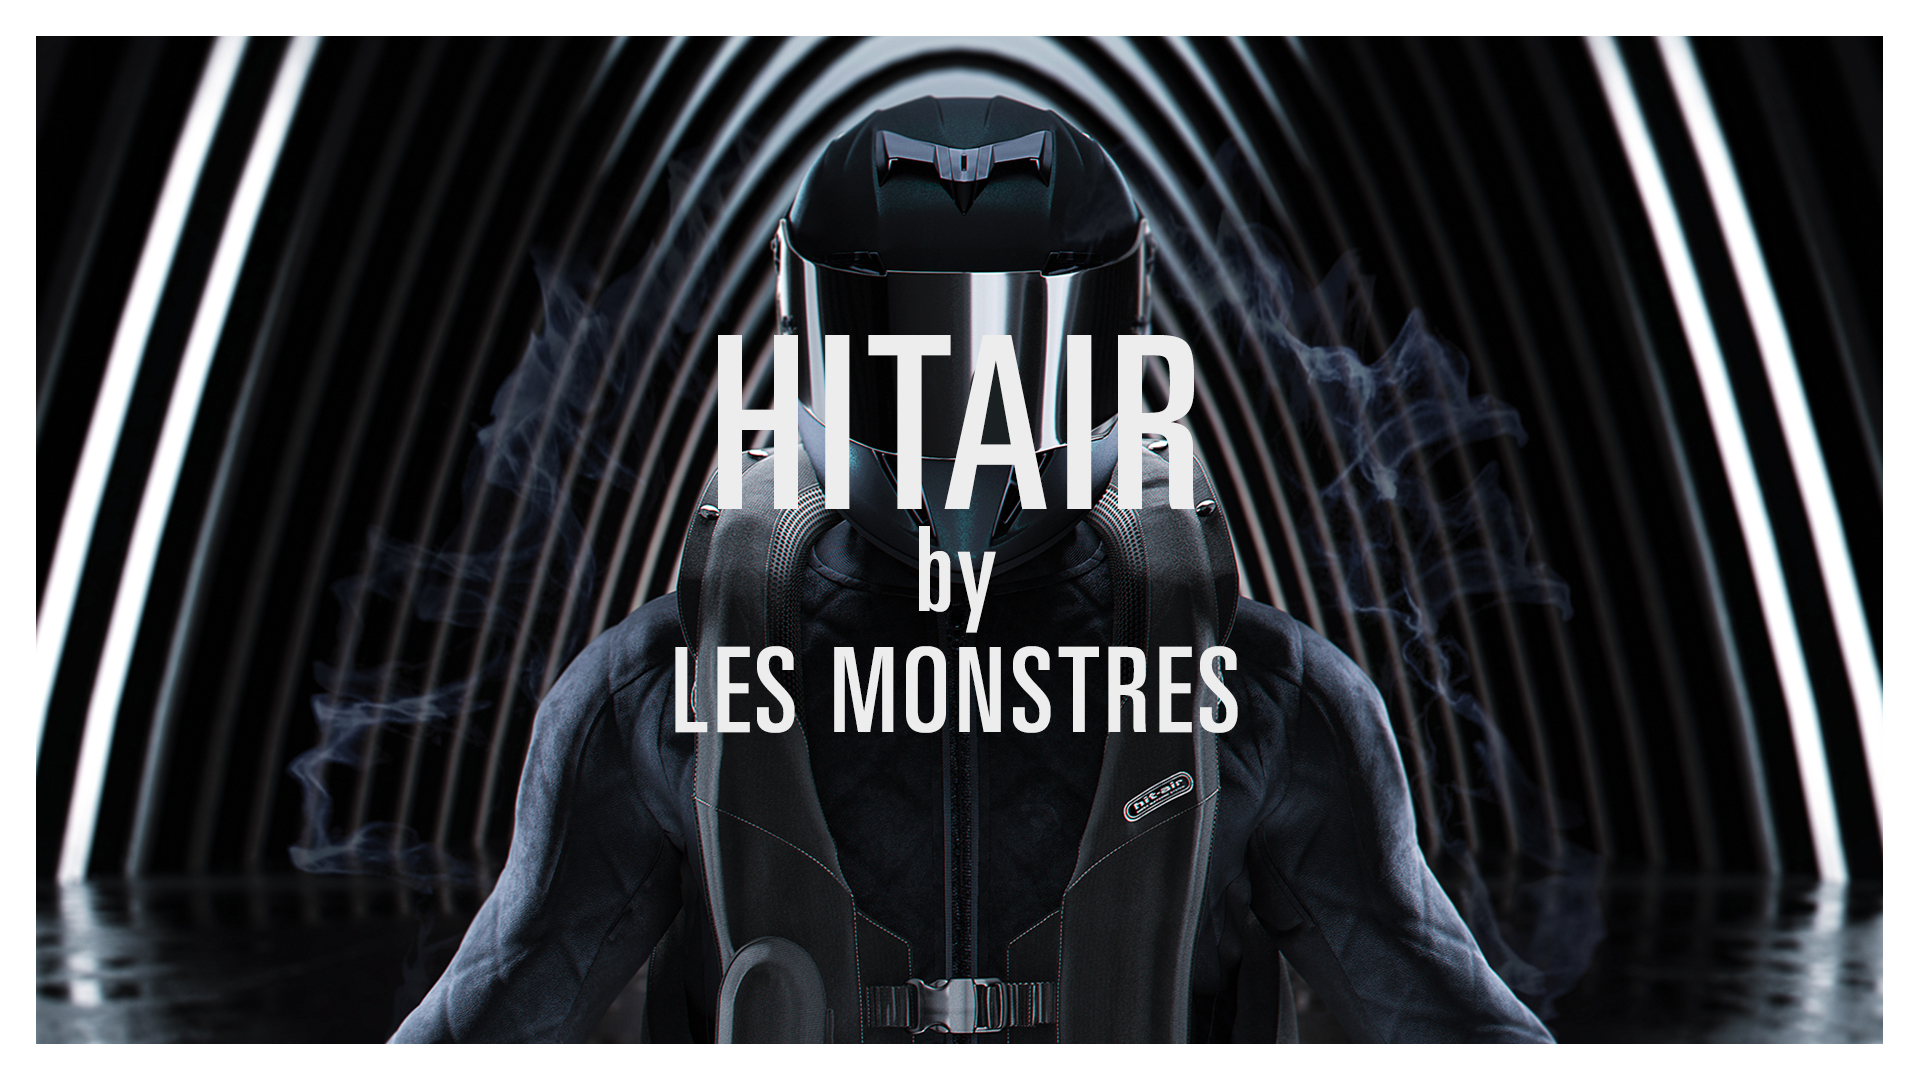 HITHAIR <br><p>by les monstres</p>